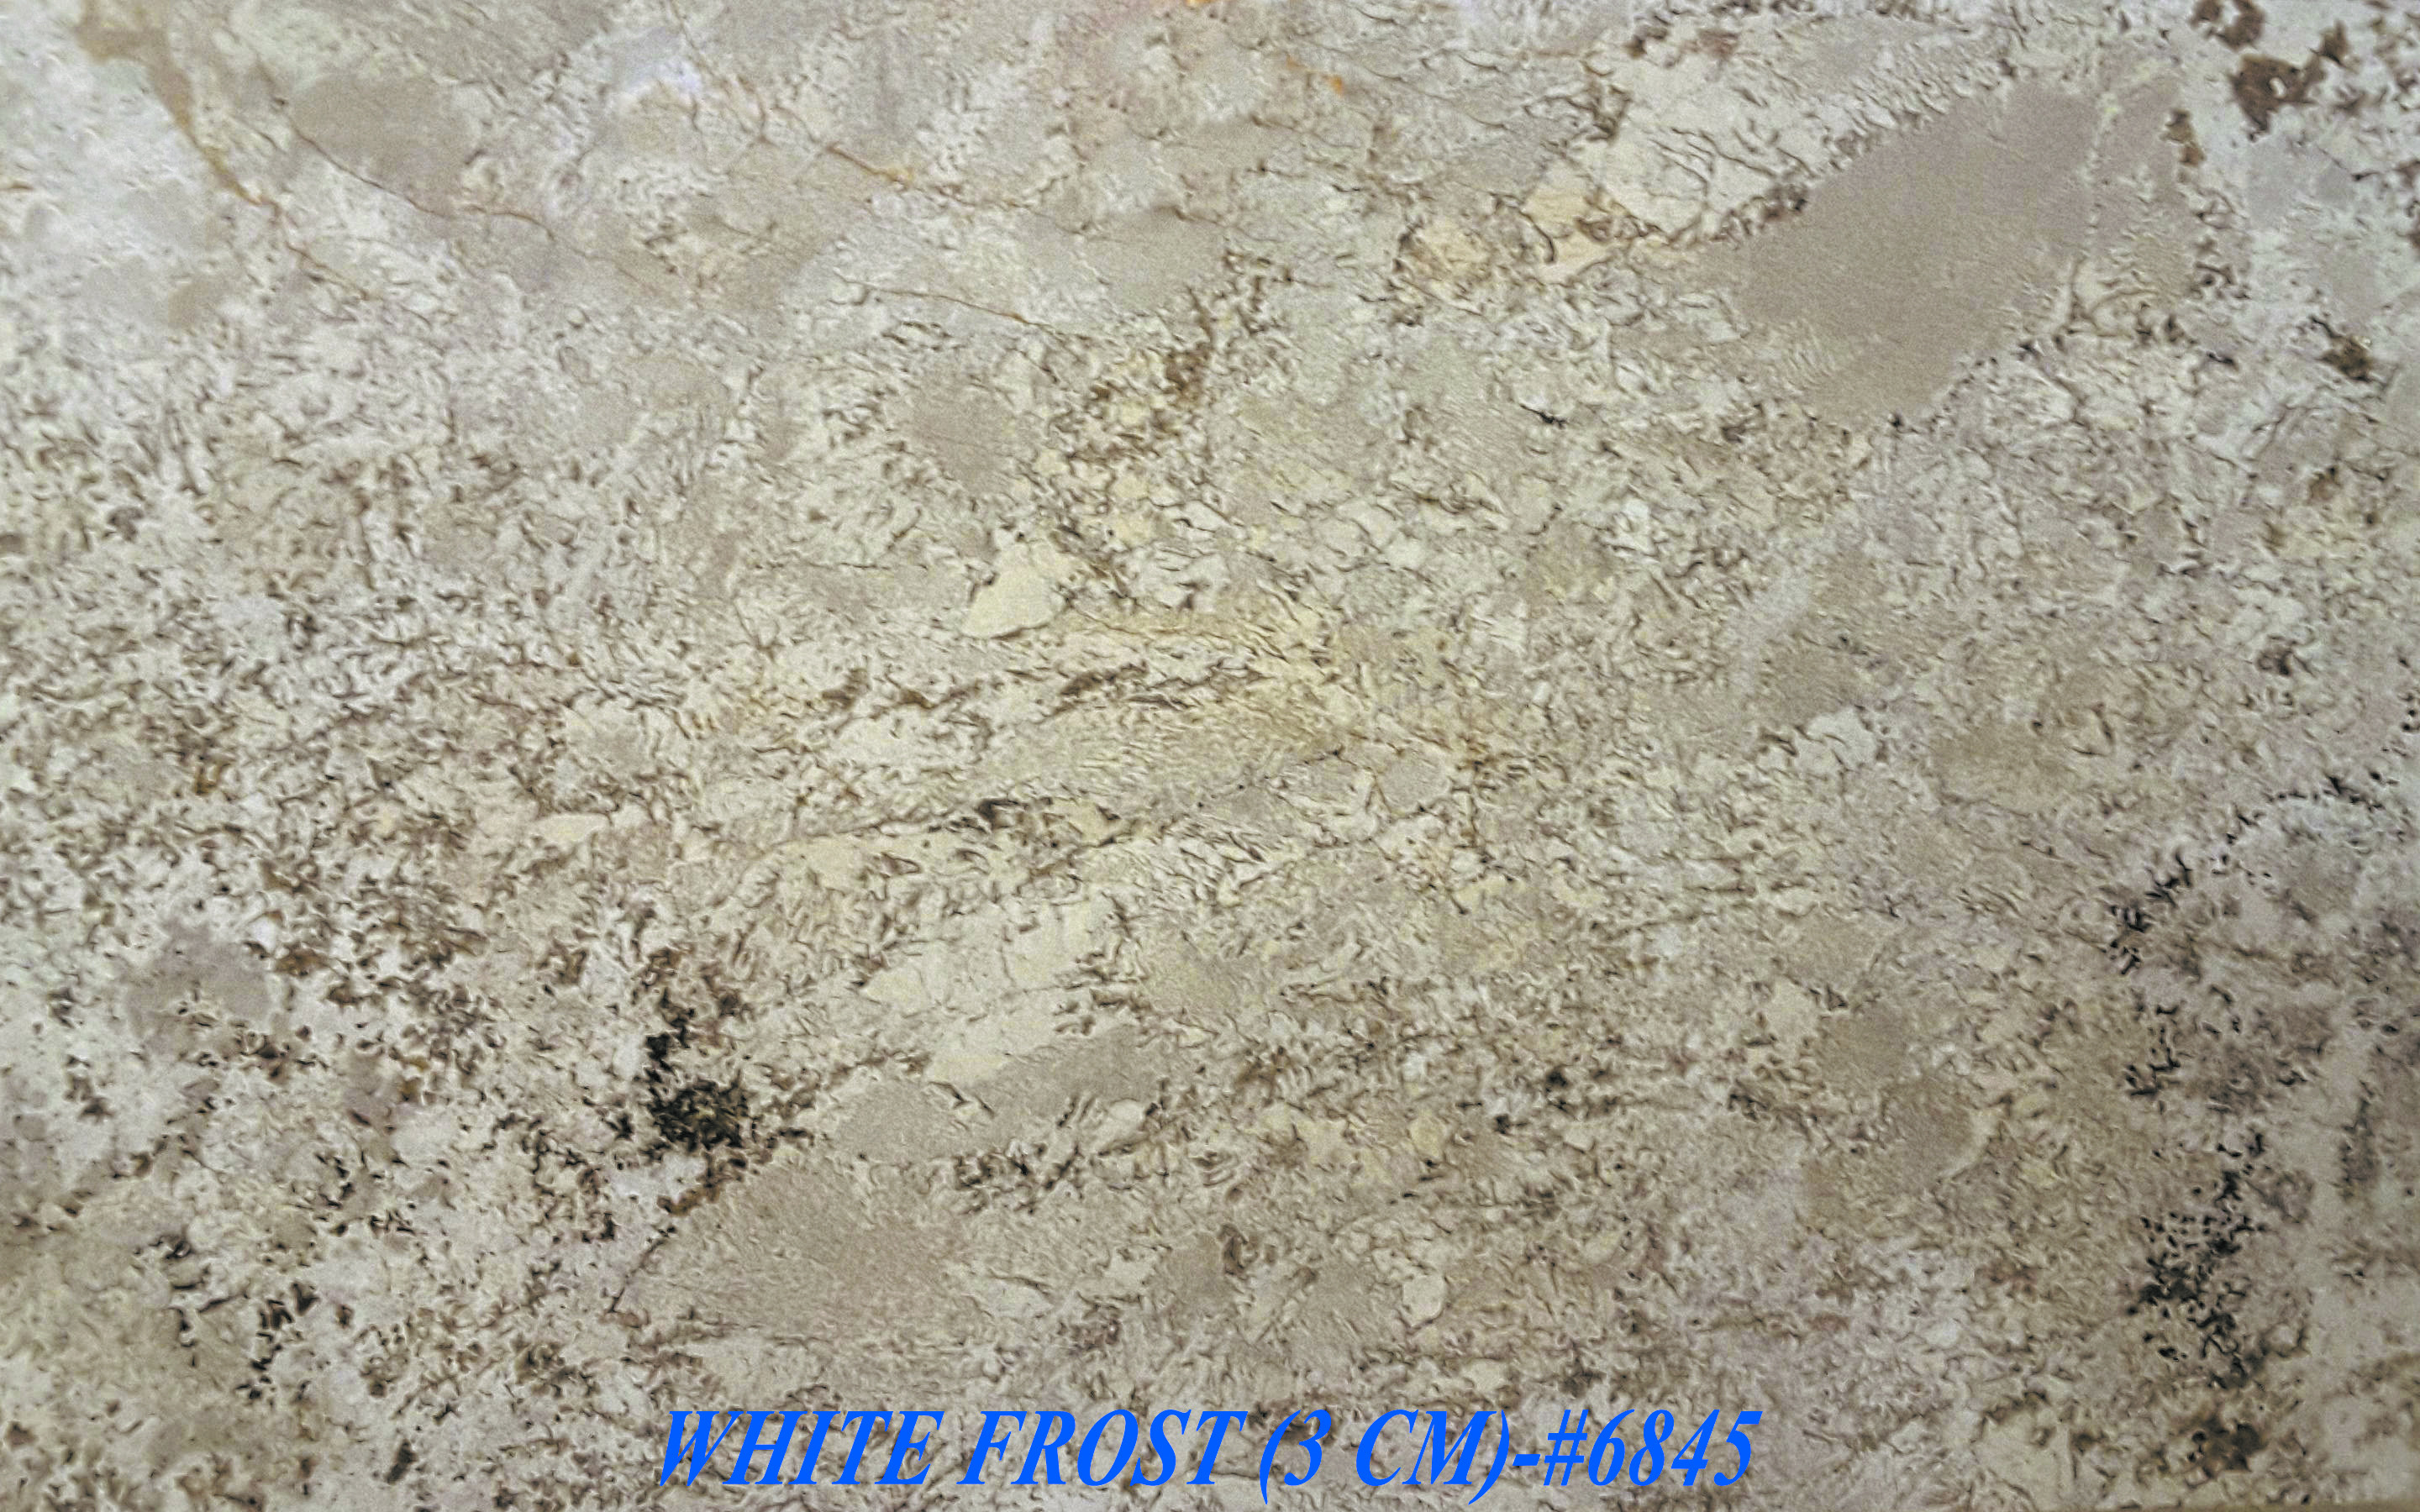 WHITE FROST (3 CM)-#6845-2